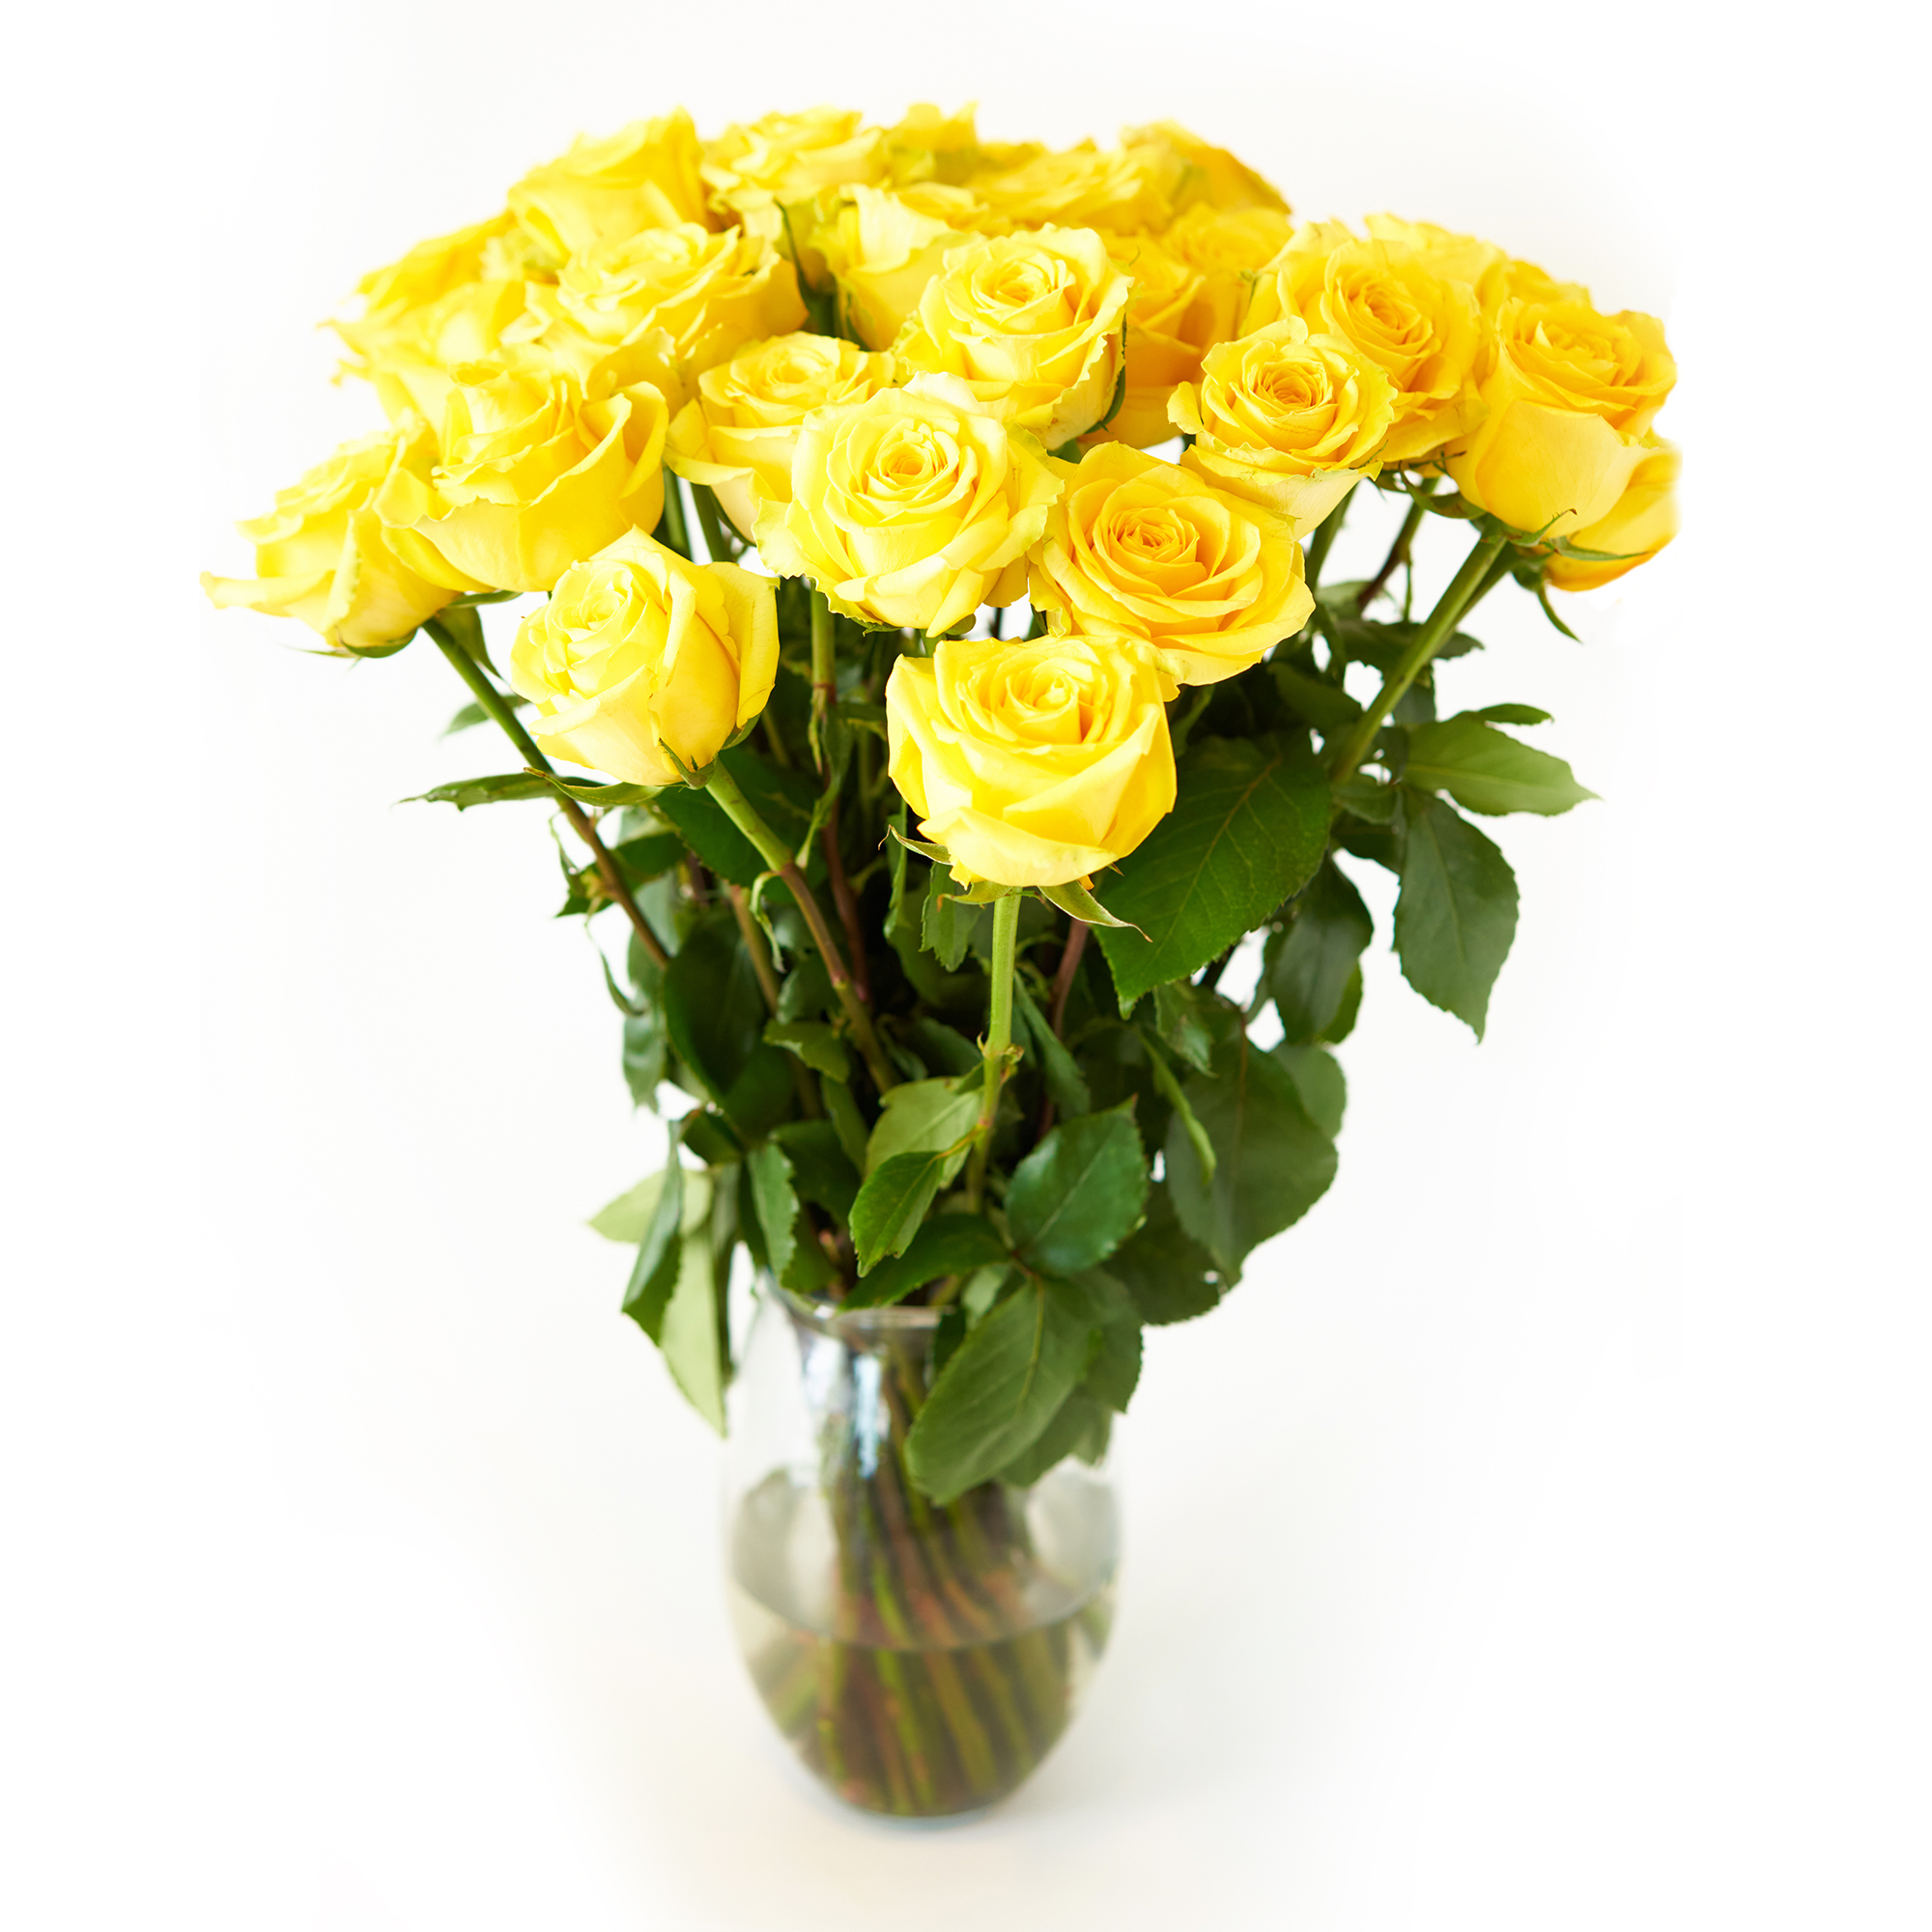 Yellow Roses Flower Bouquet 96 Yellow Roses Long Stem 8 Dozen Roses Beautiful Yellow Roses Delivery Luxury Fresh Roses Birthday Anniversary Roses Any Occasion Walmart Com Walmart Com